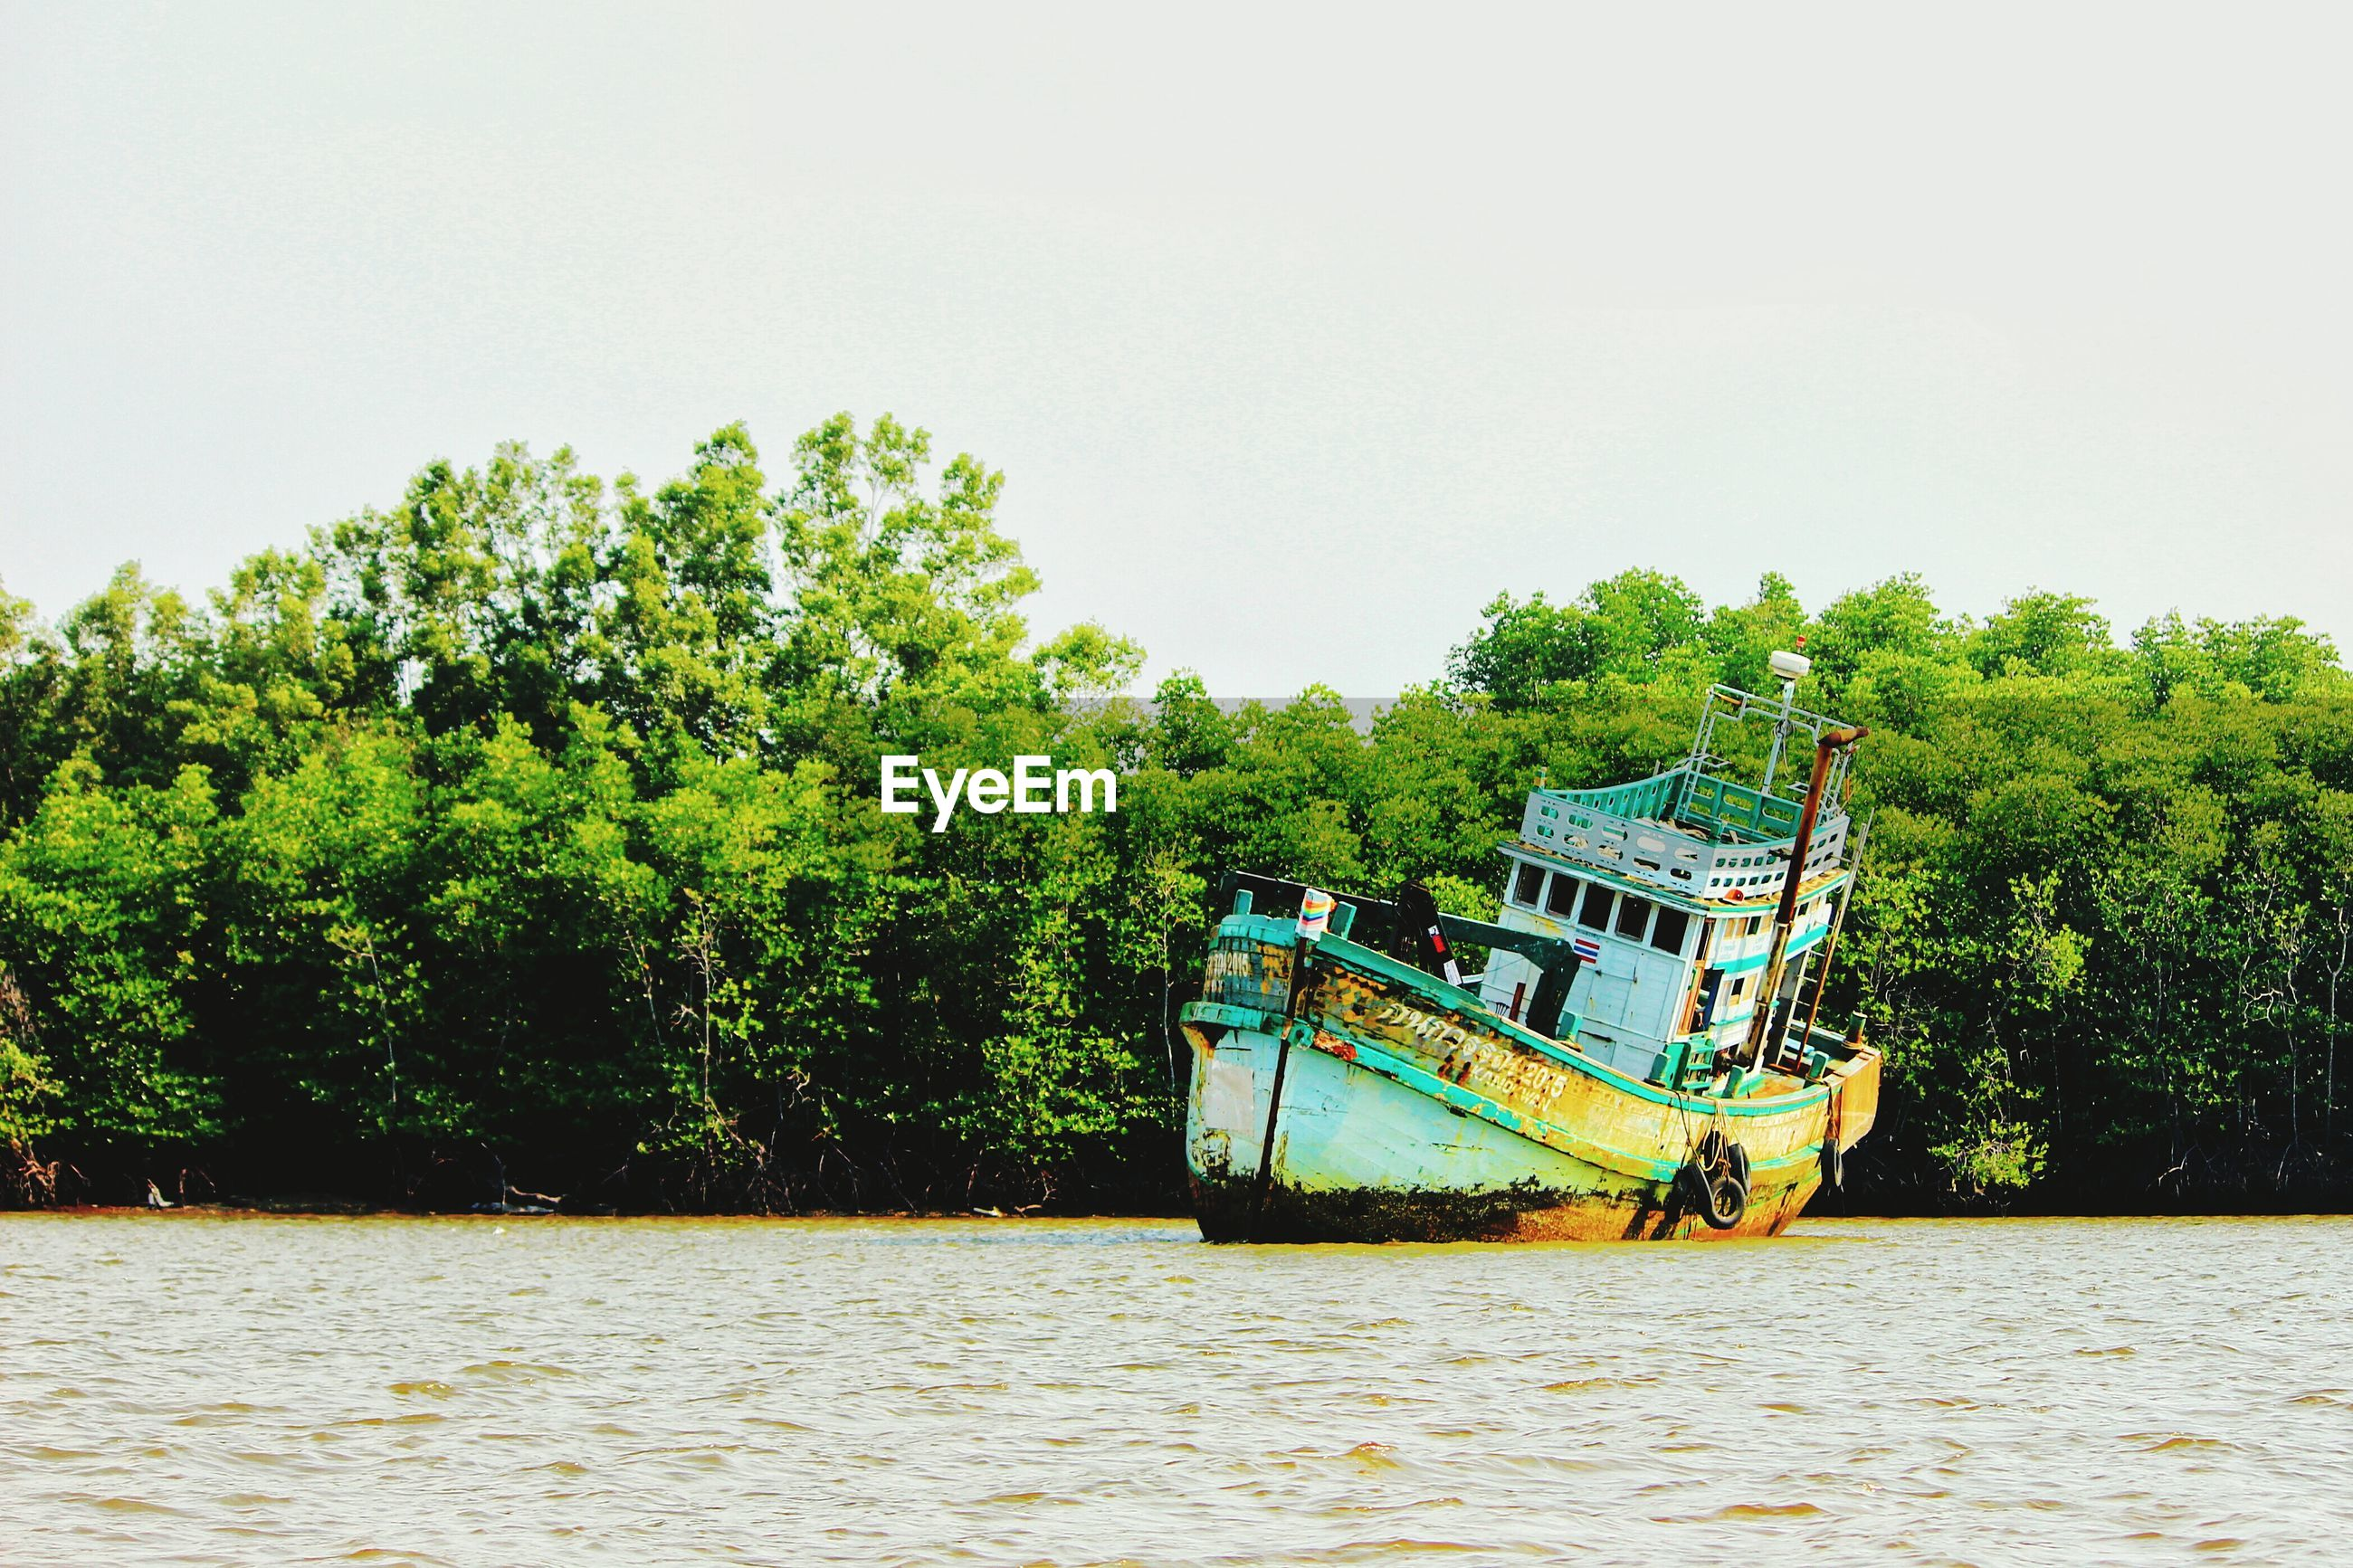 Abandoned boat by mangrove trees on river against clear sky